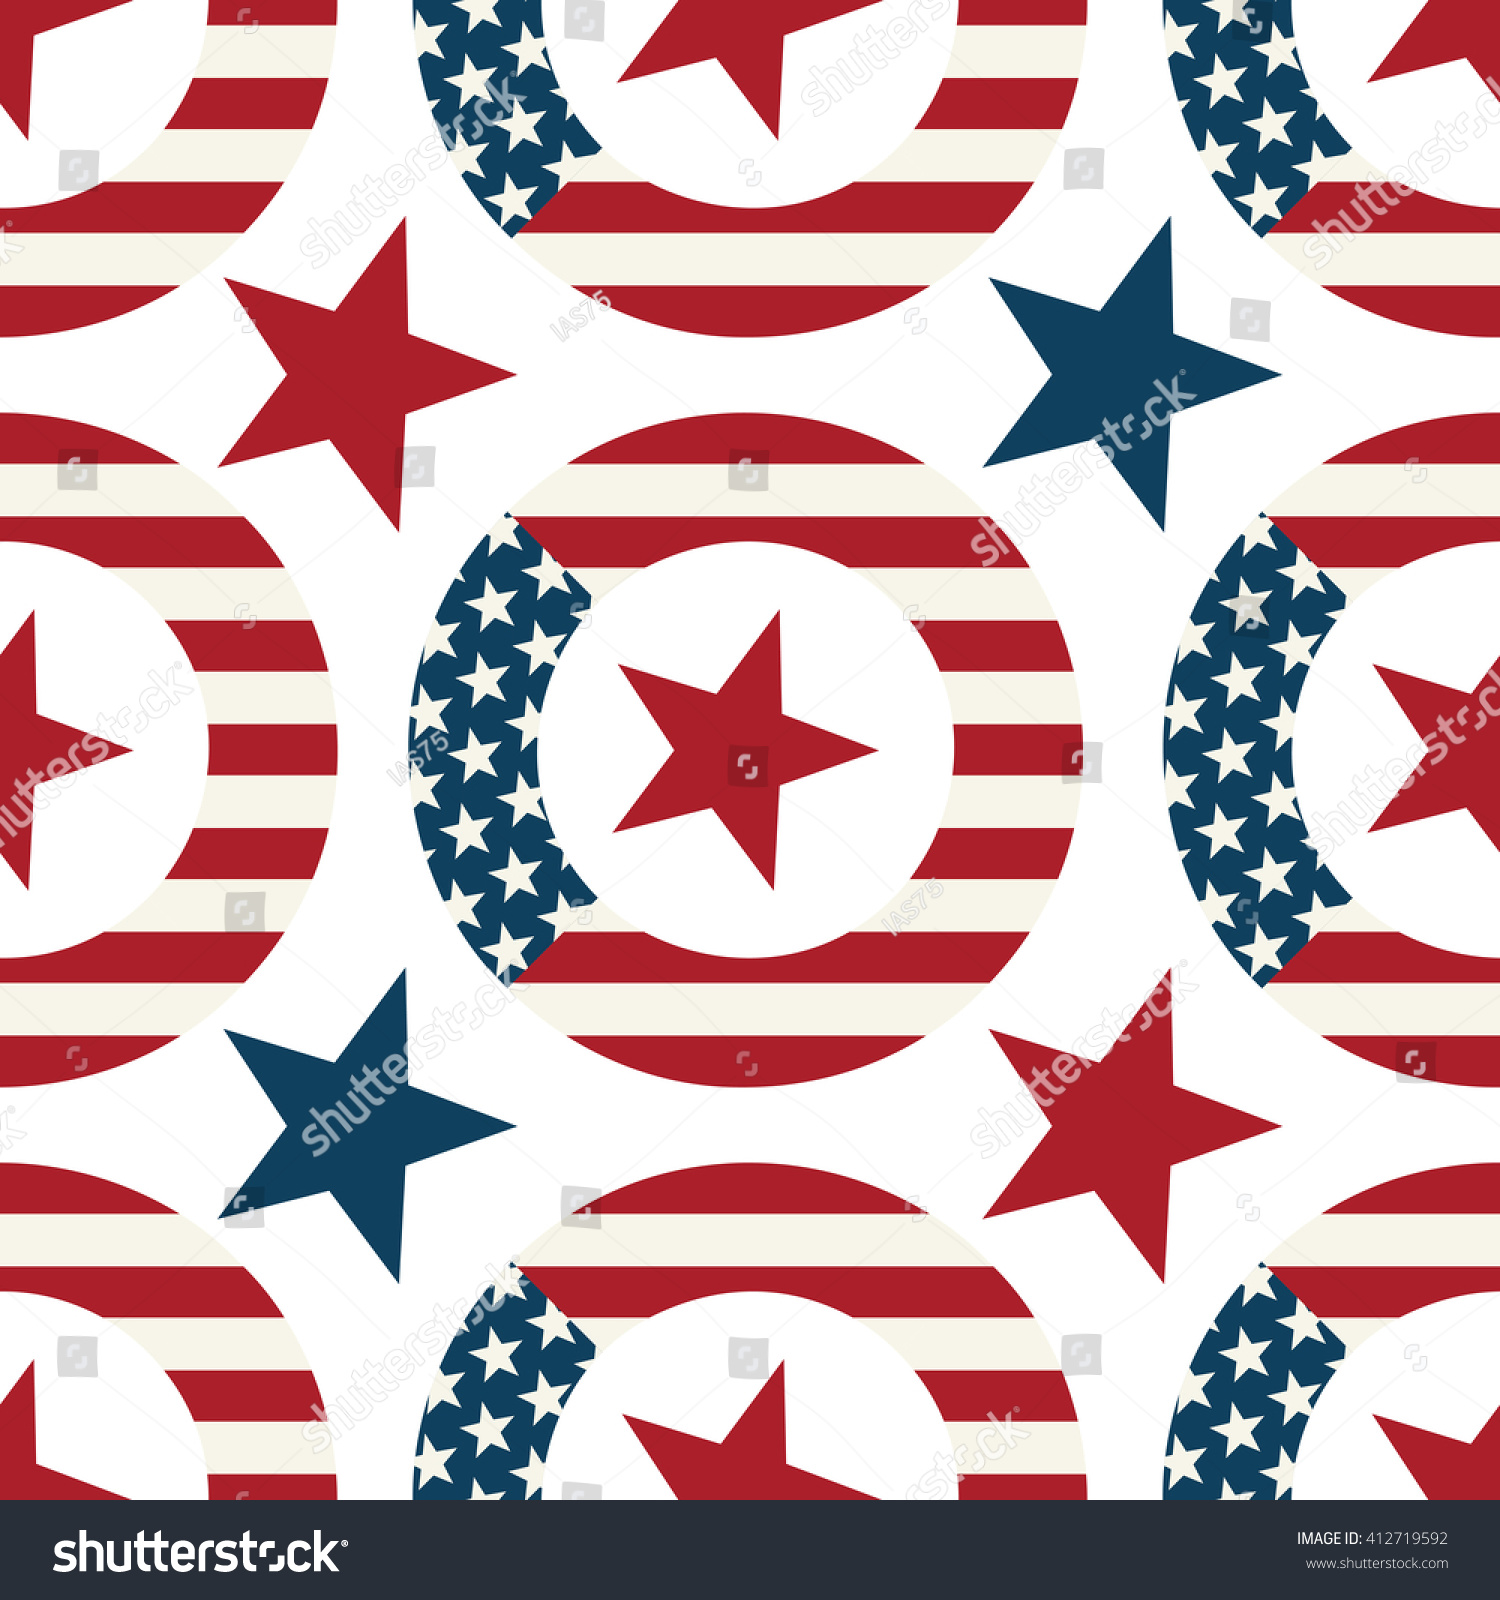 Wreath symbols us flag seamless pattern stock illustration wreath with symbols of the us flag seamless pattern biocorpaavc Images